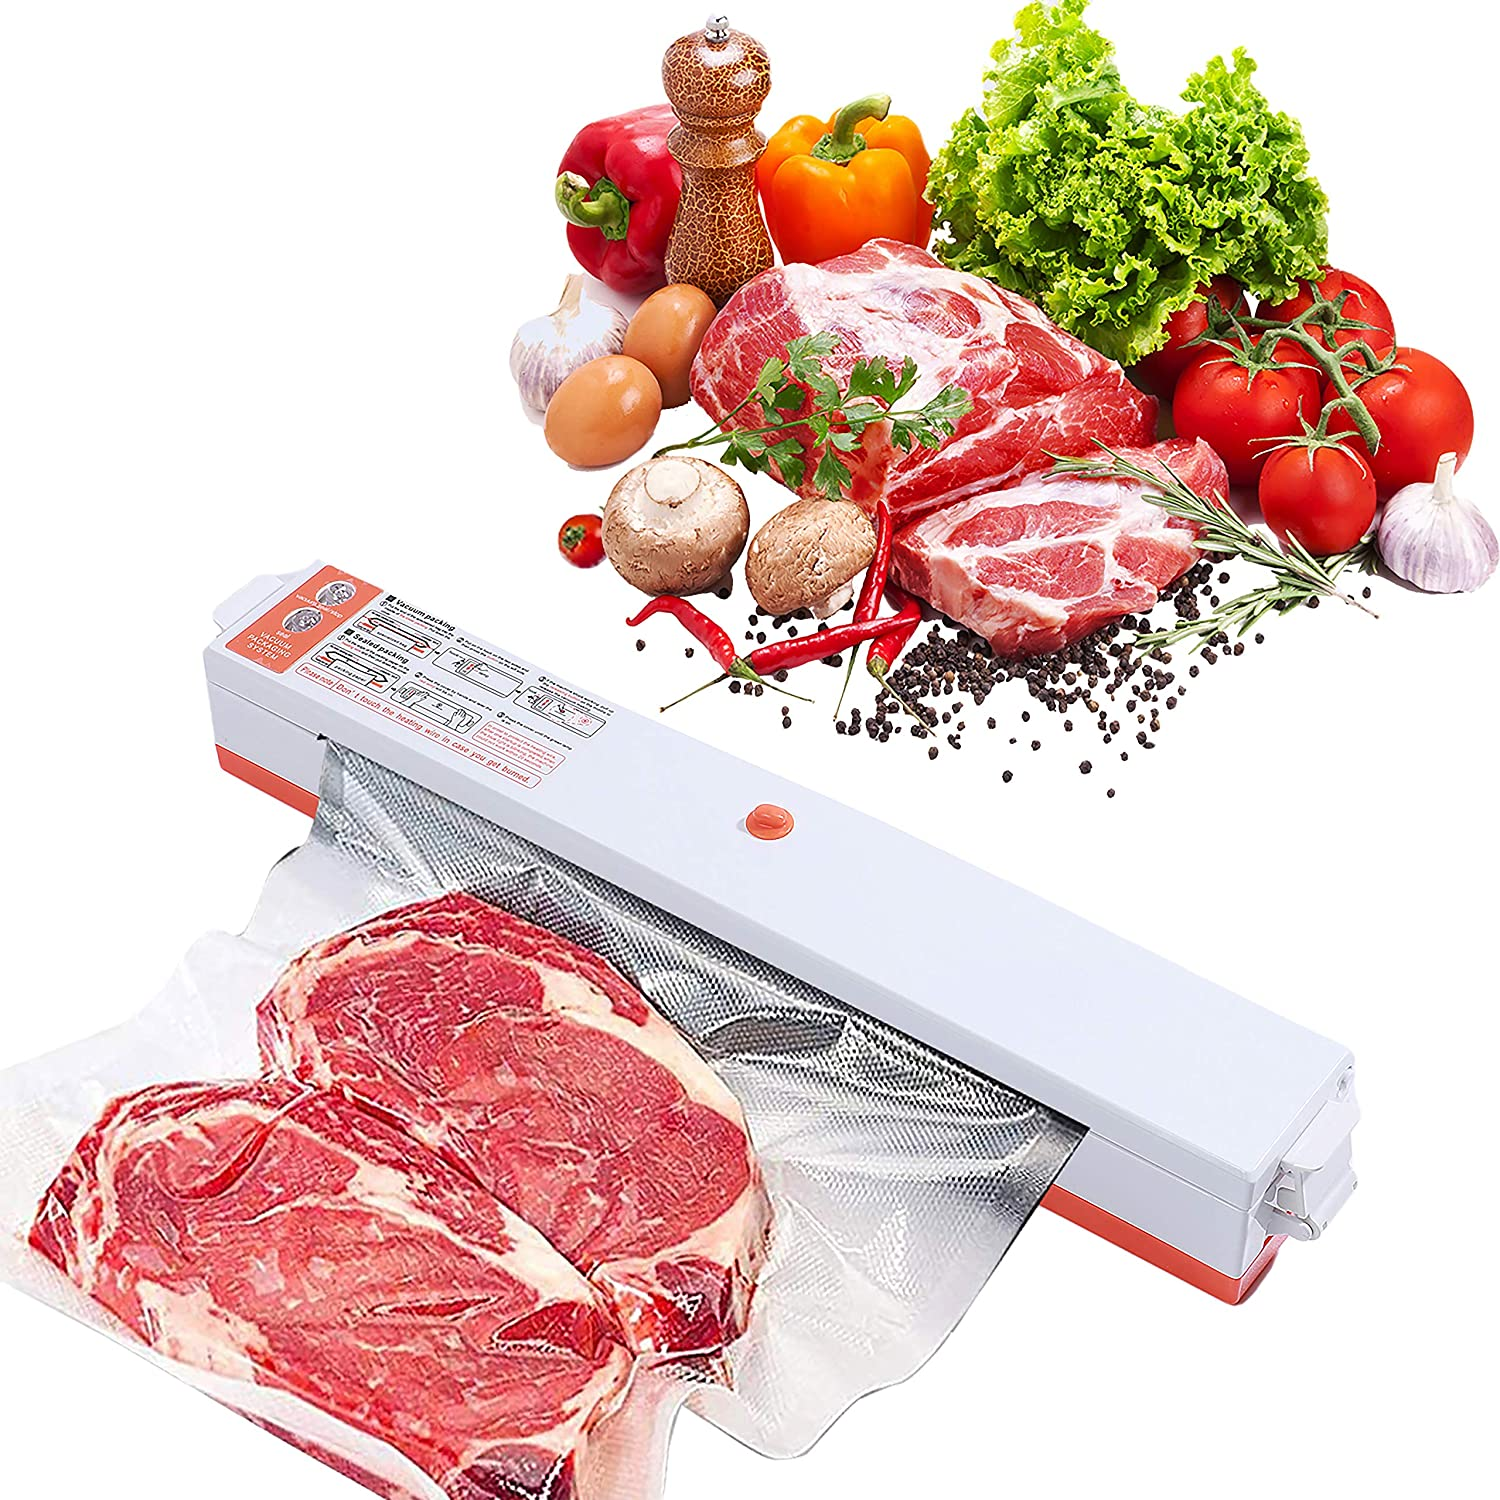 Vacuum Sealer Machine,Multifunctional Automatic Food Sealer,Seal a Meal,Food-saving Packing (14*Vacuum Sealer Bags for Food Storage Included)